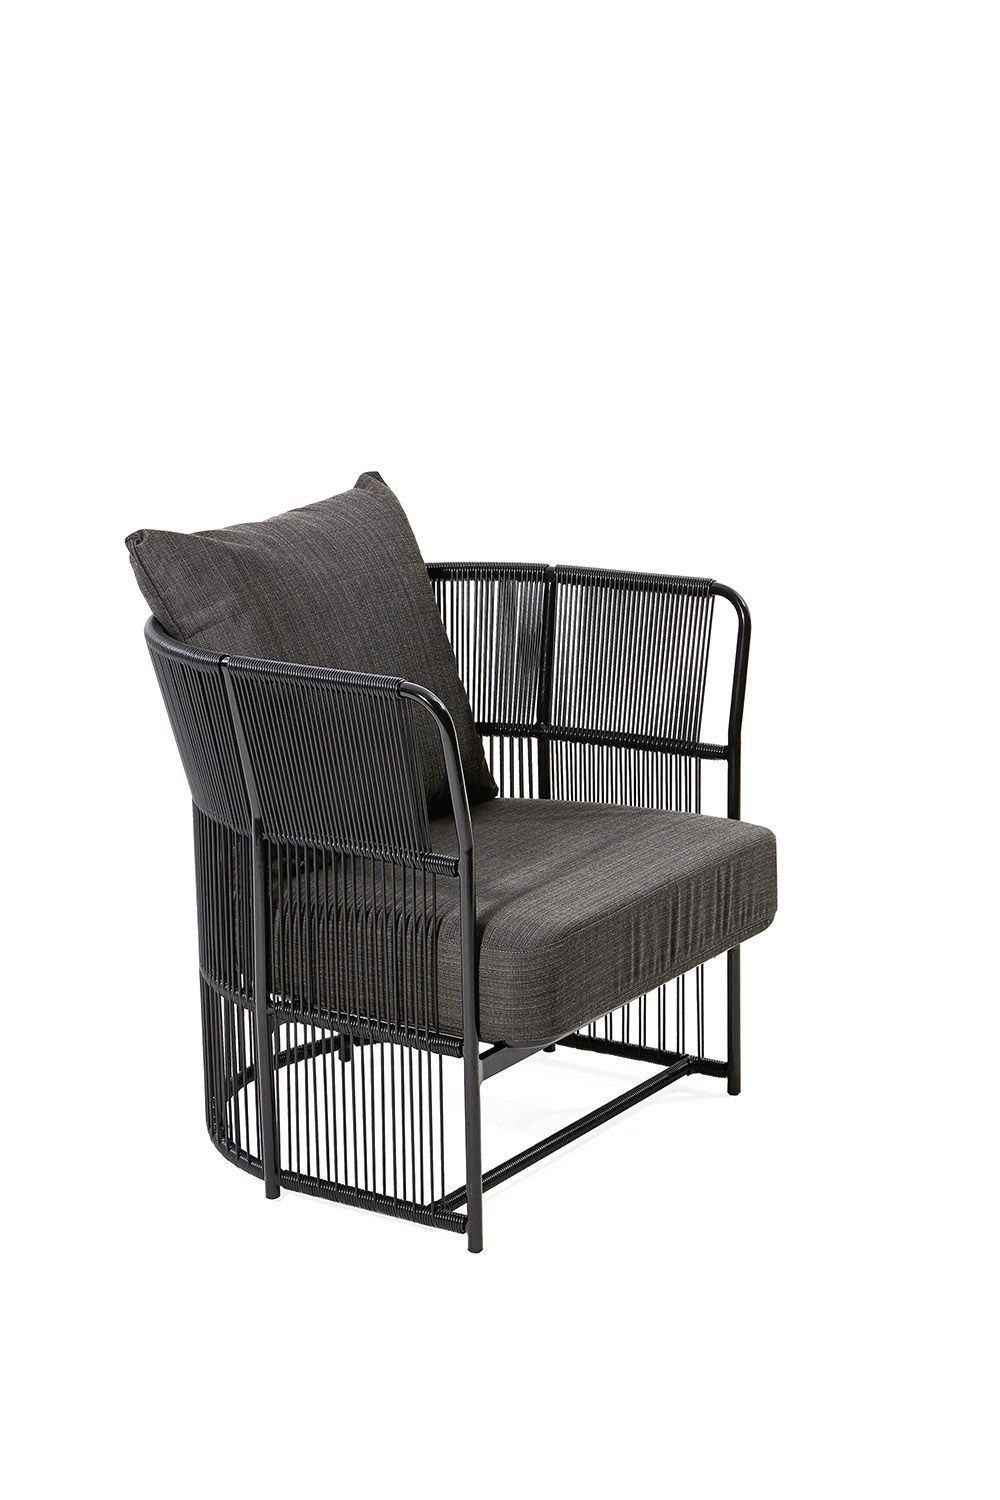 Obi Arredamento ~ Mobili obi. beautiful armchair black tibidabo armchair design